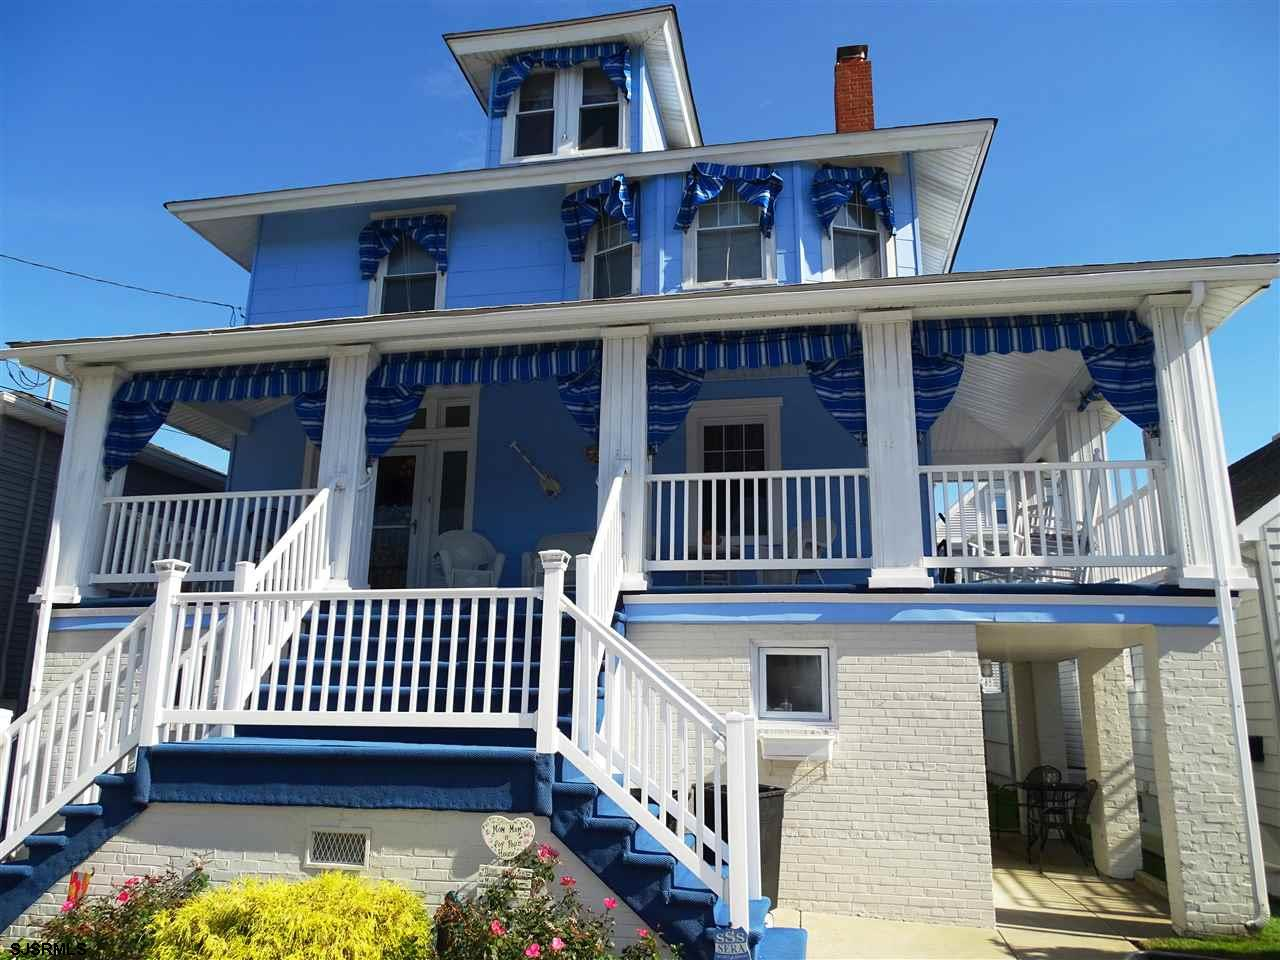 15 S Rosborough, Ventnor, NJ 08406